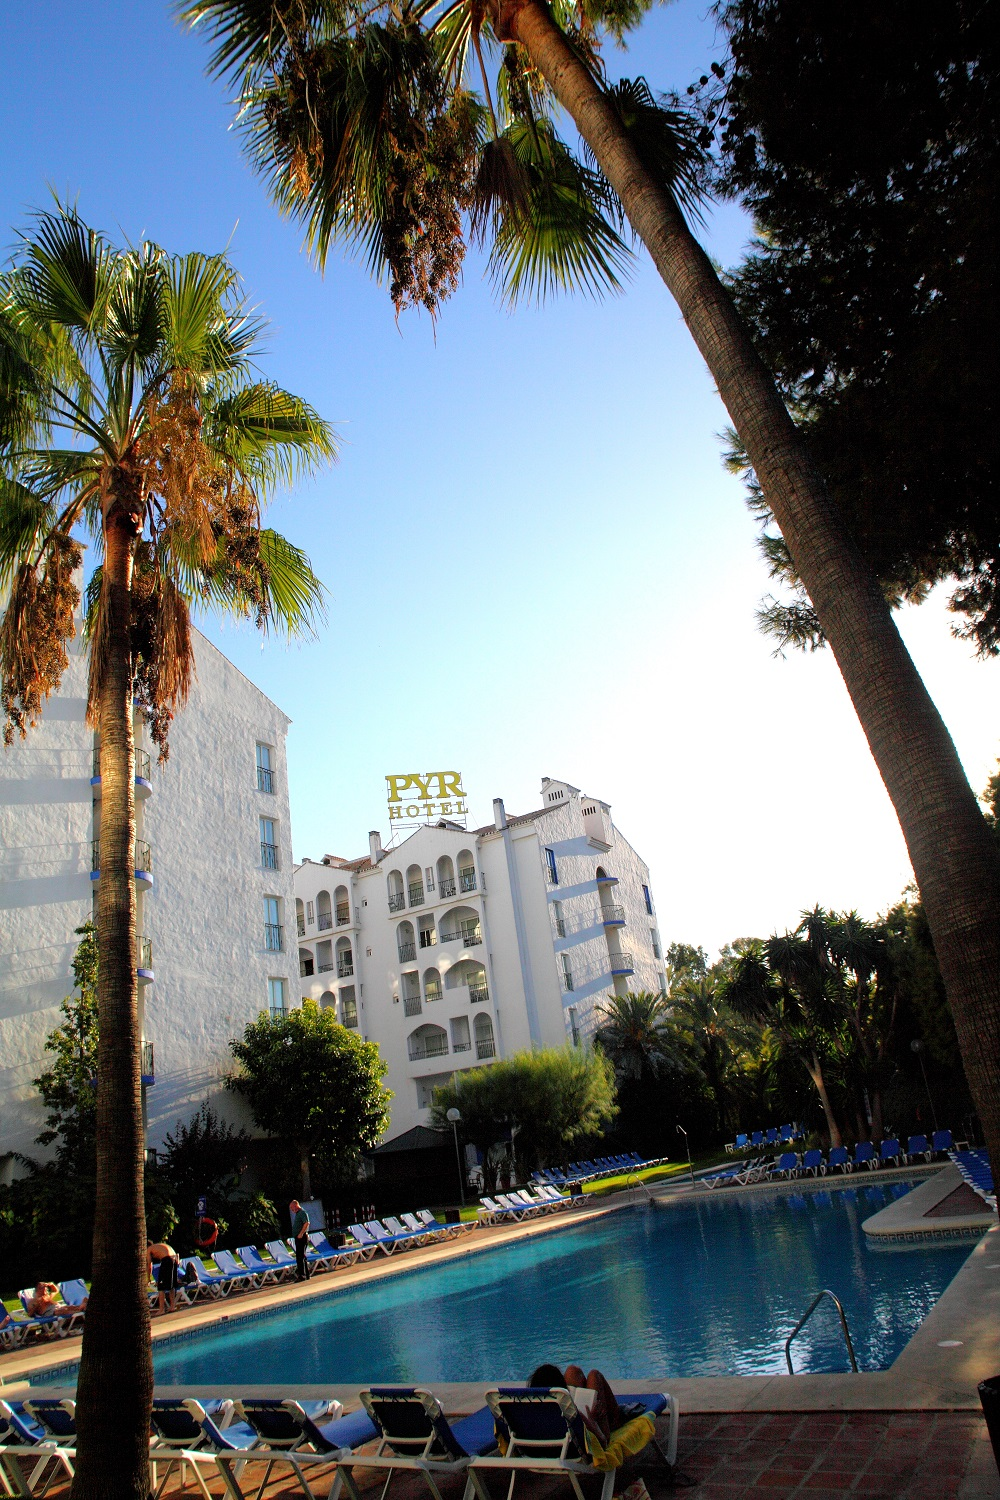 Disabled access holidays wheelchair accessible - Hotel pyr puerto banus ...